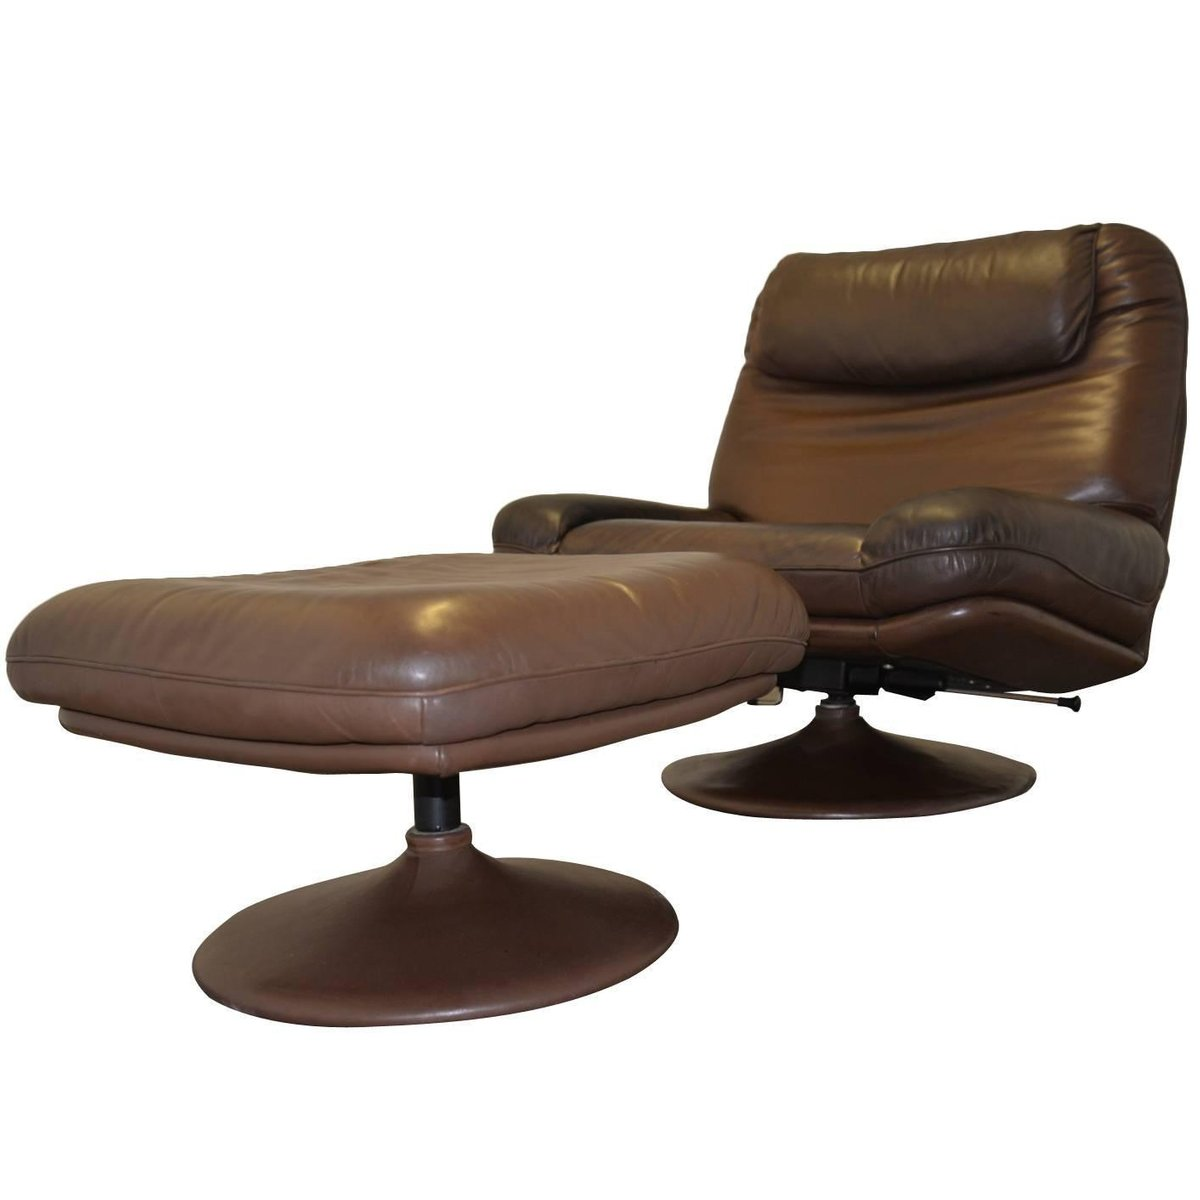 Vintage Swiss Lounge Armchair and Ottoman by De Sede 1970s for sale